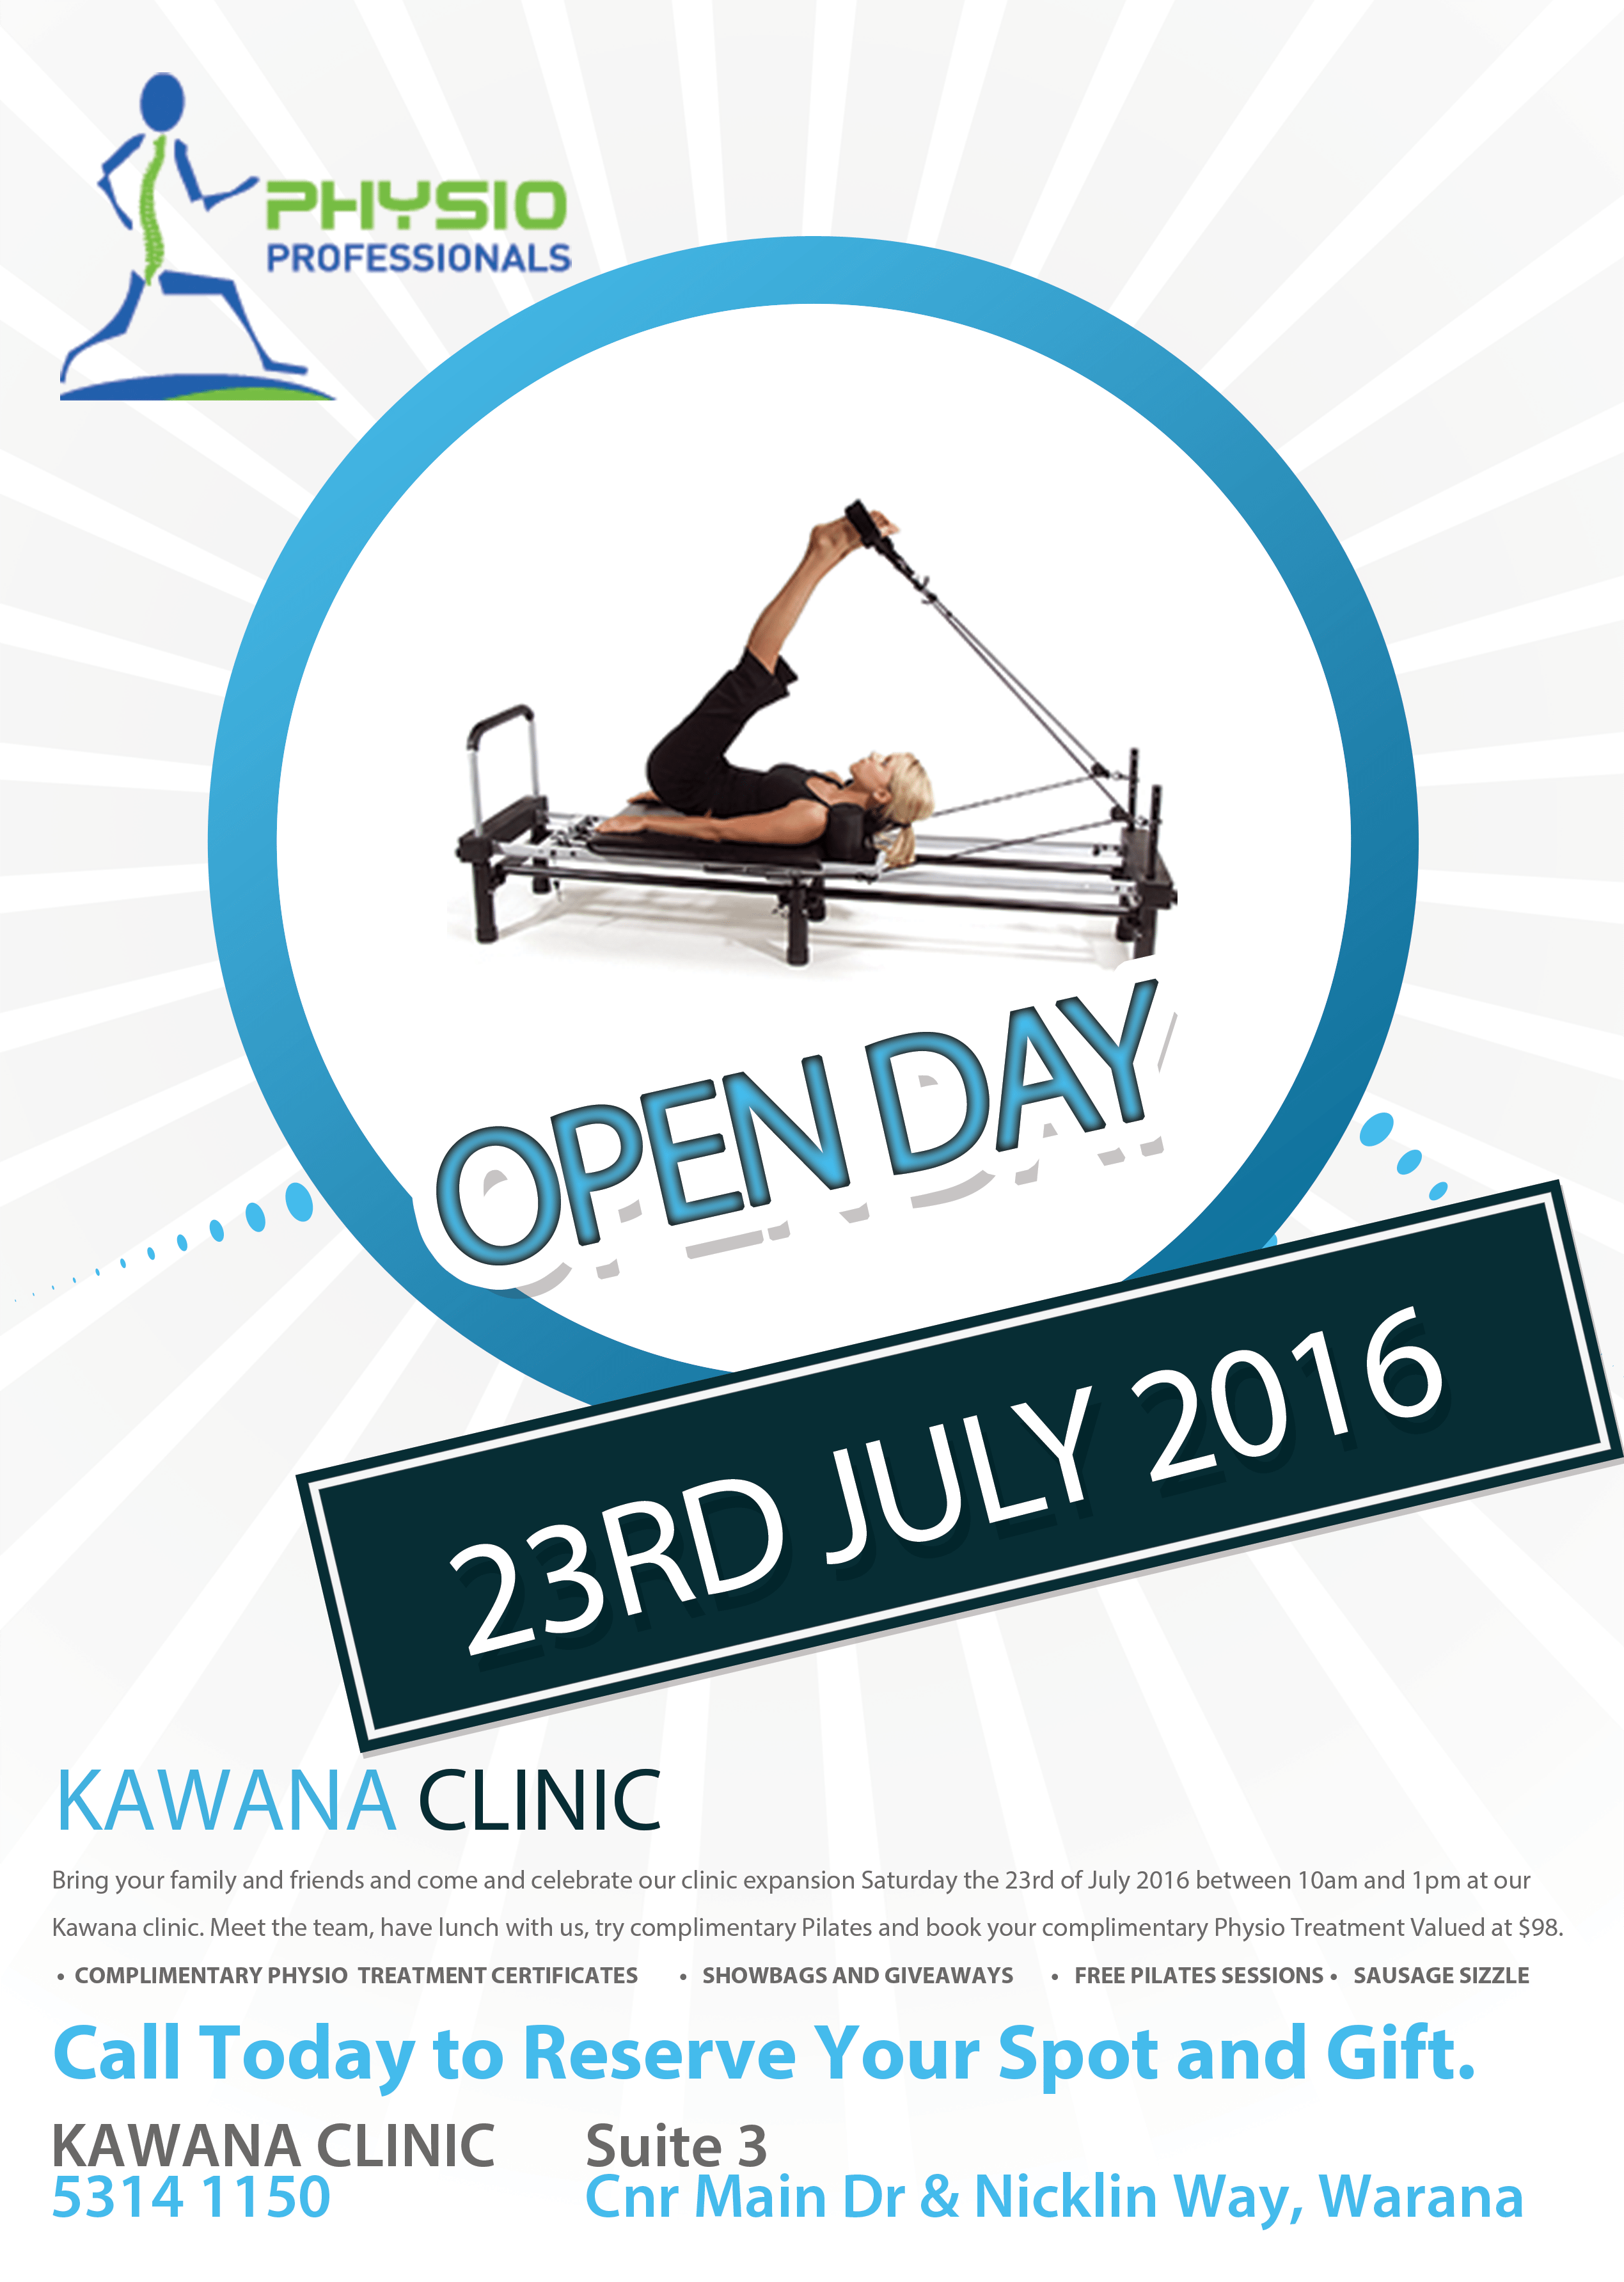 open-day-23rd-july